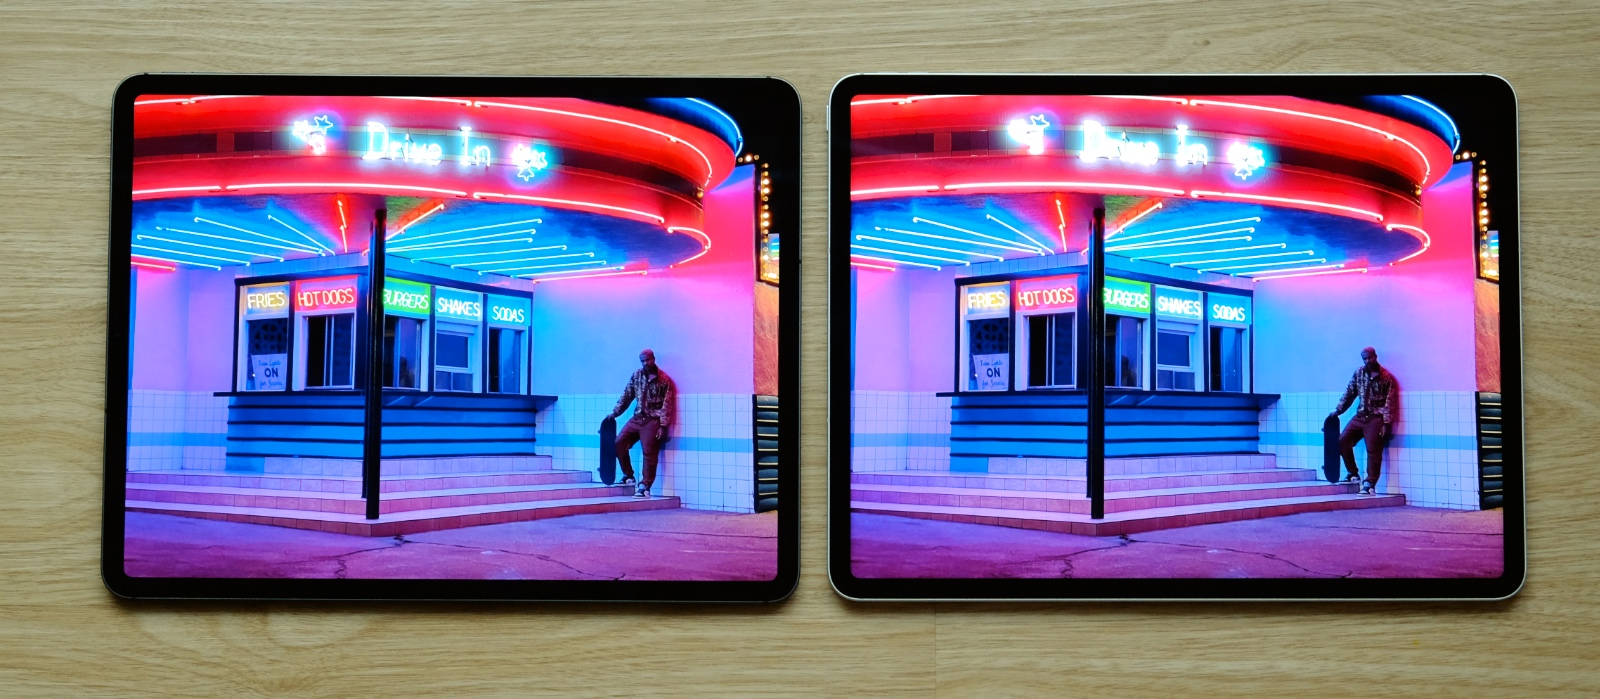 """New iPad Pro on the right. The differences are not so obvious in this image but the neon signs """"pop"""" a little more."""